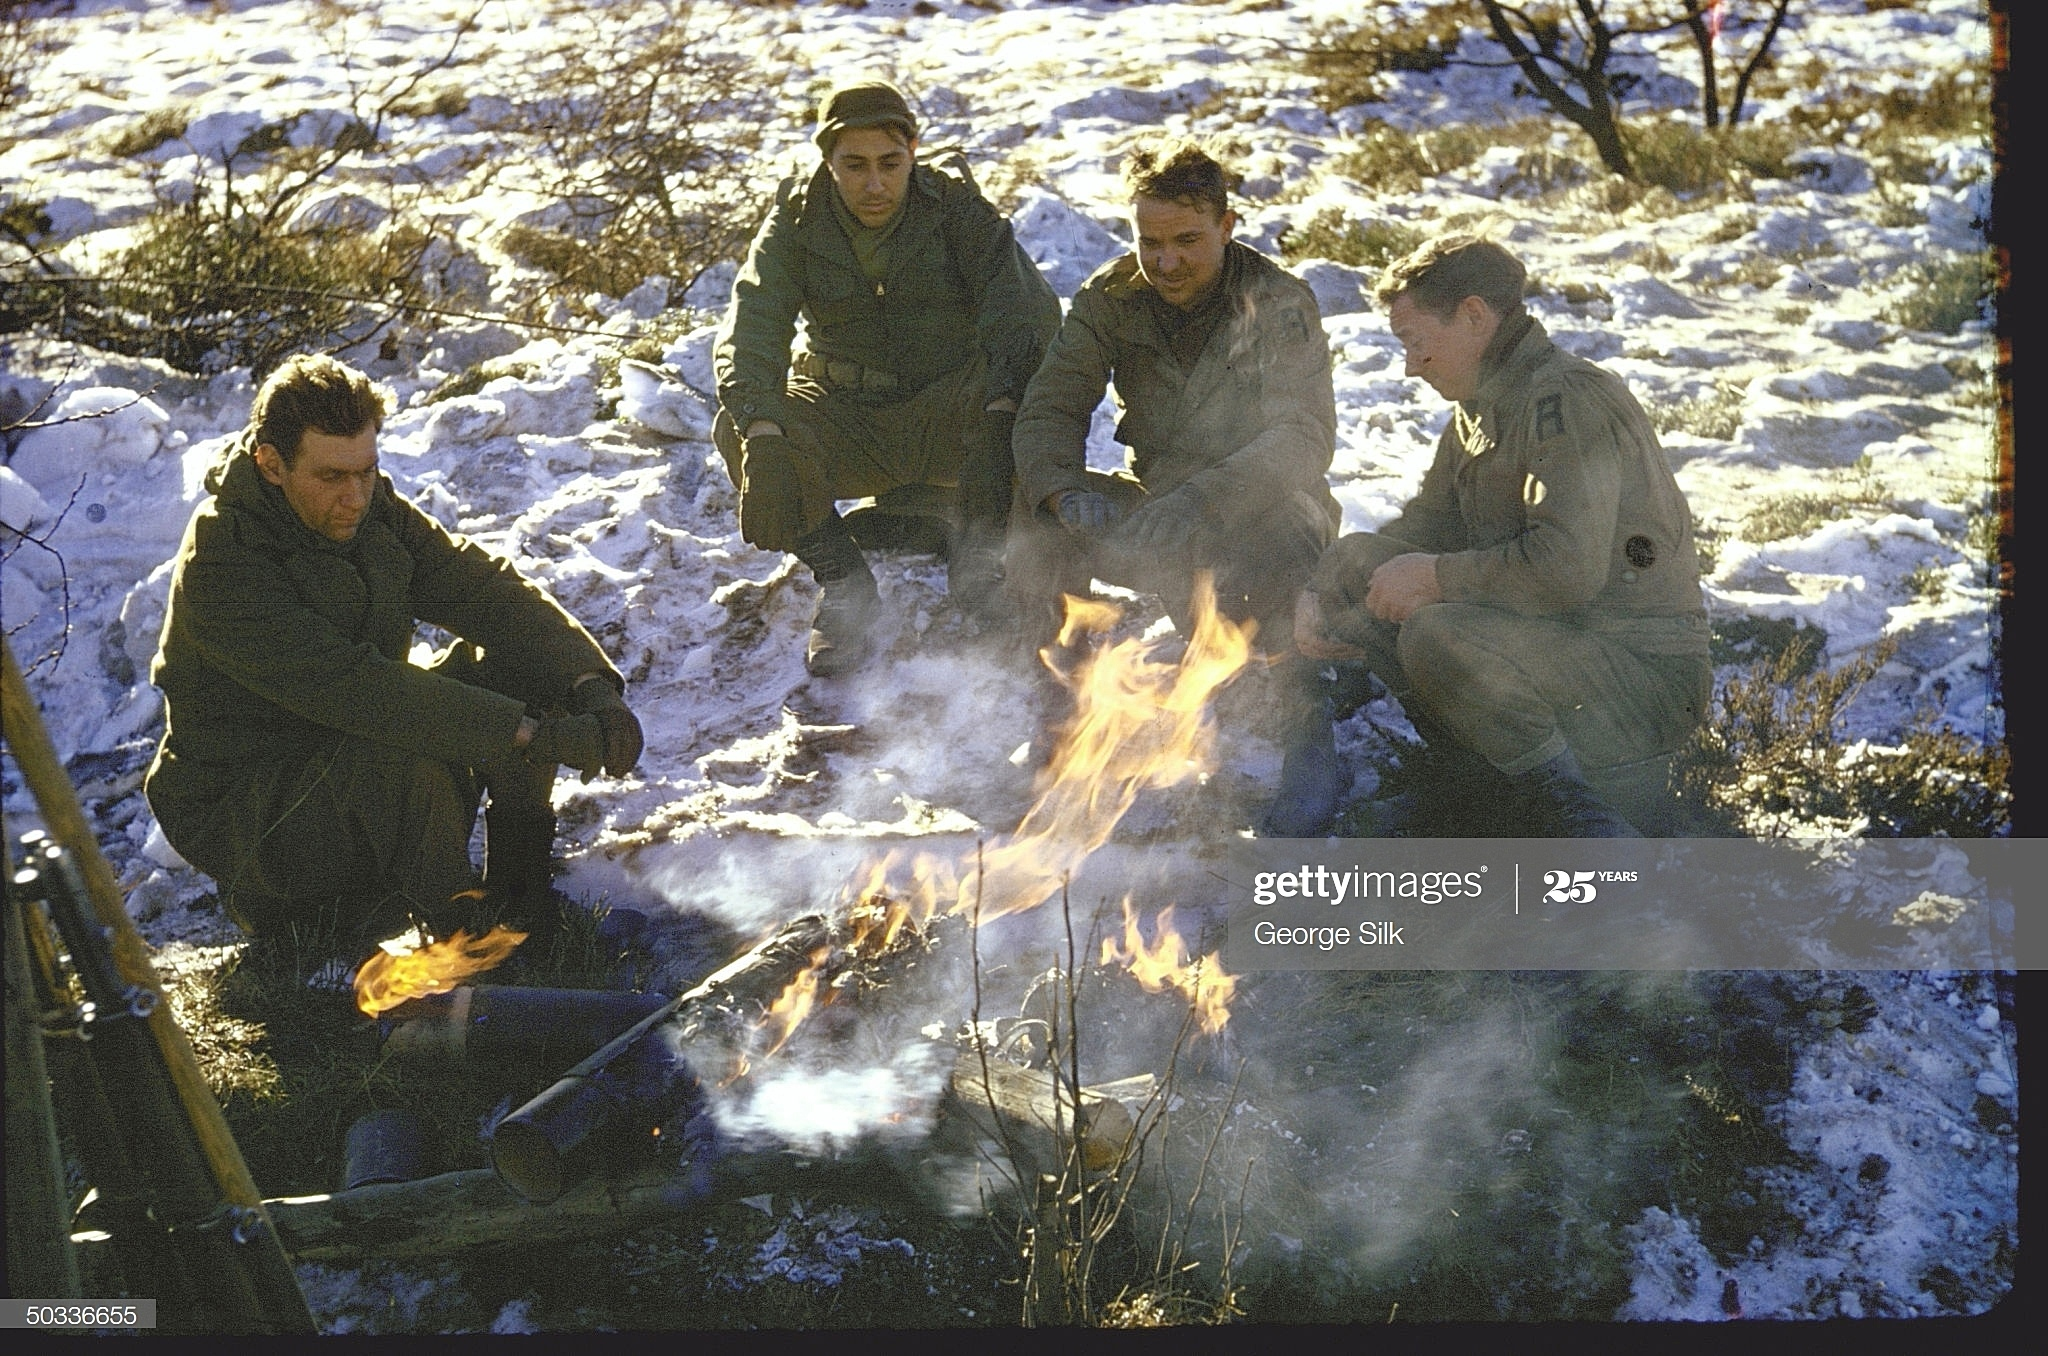 American soldiers in the Ardennes in the winter of 1944-45. War photos in color. Photographer George Silk